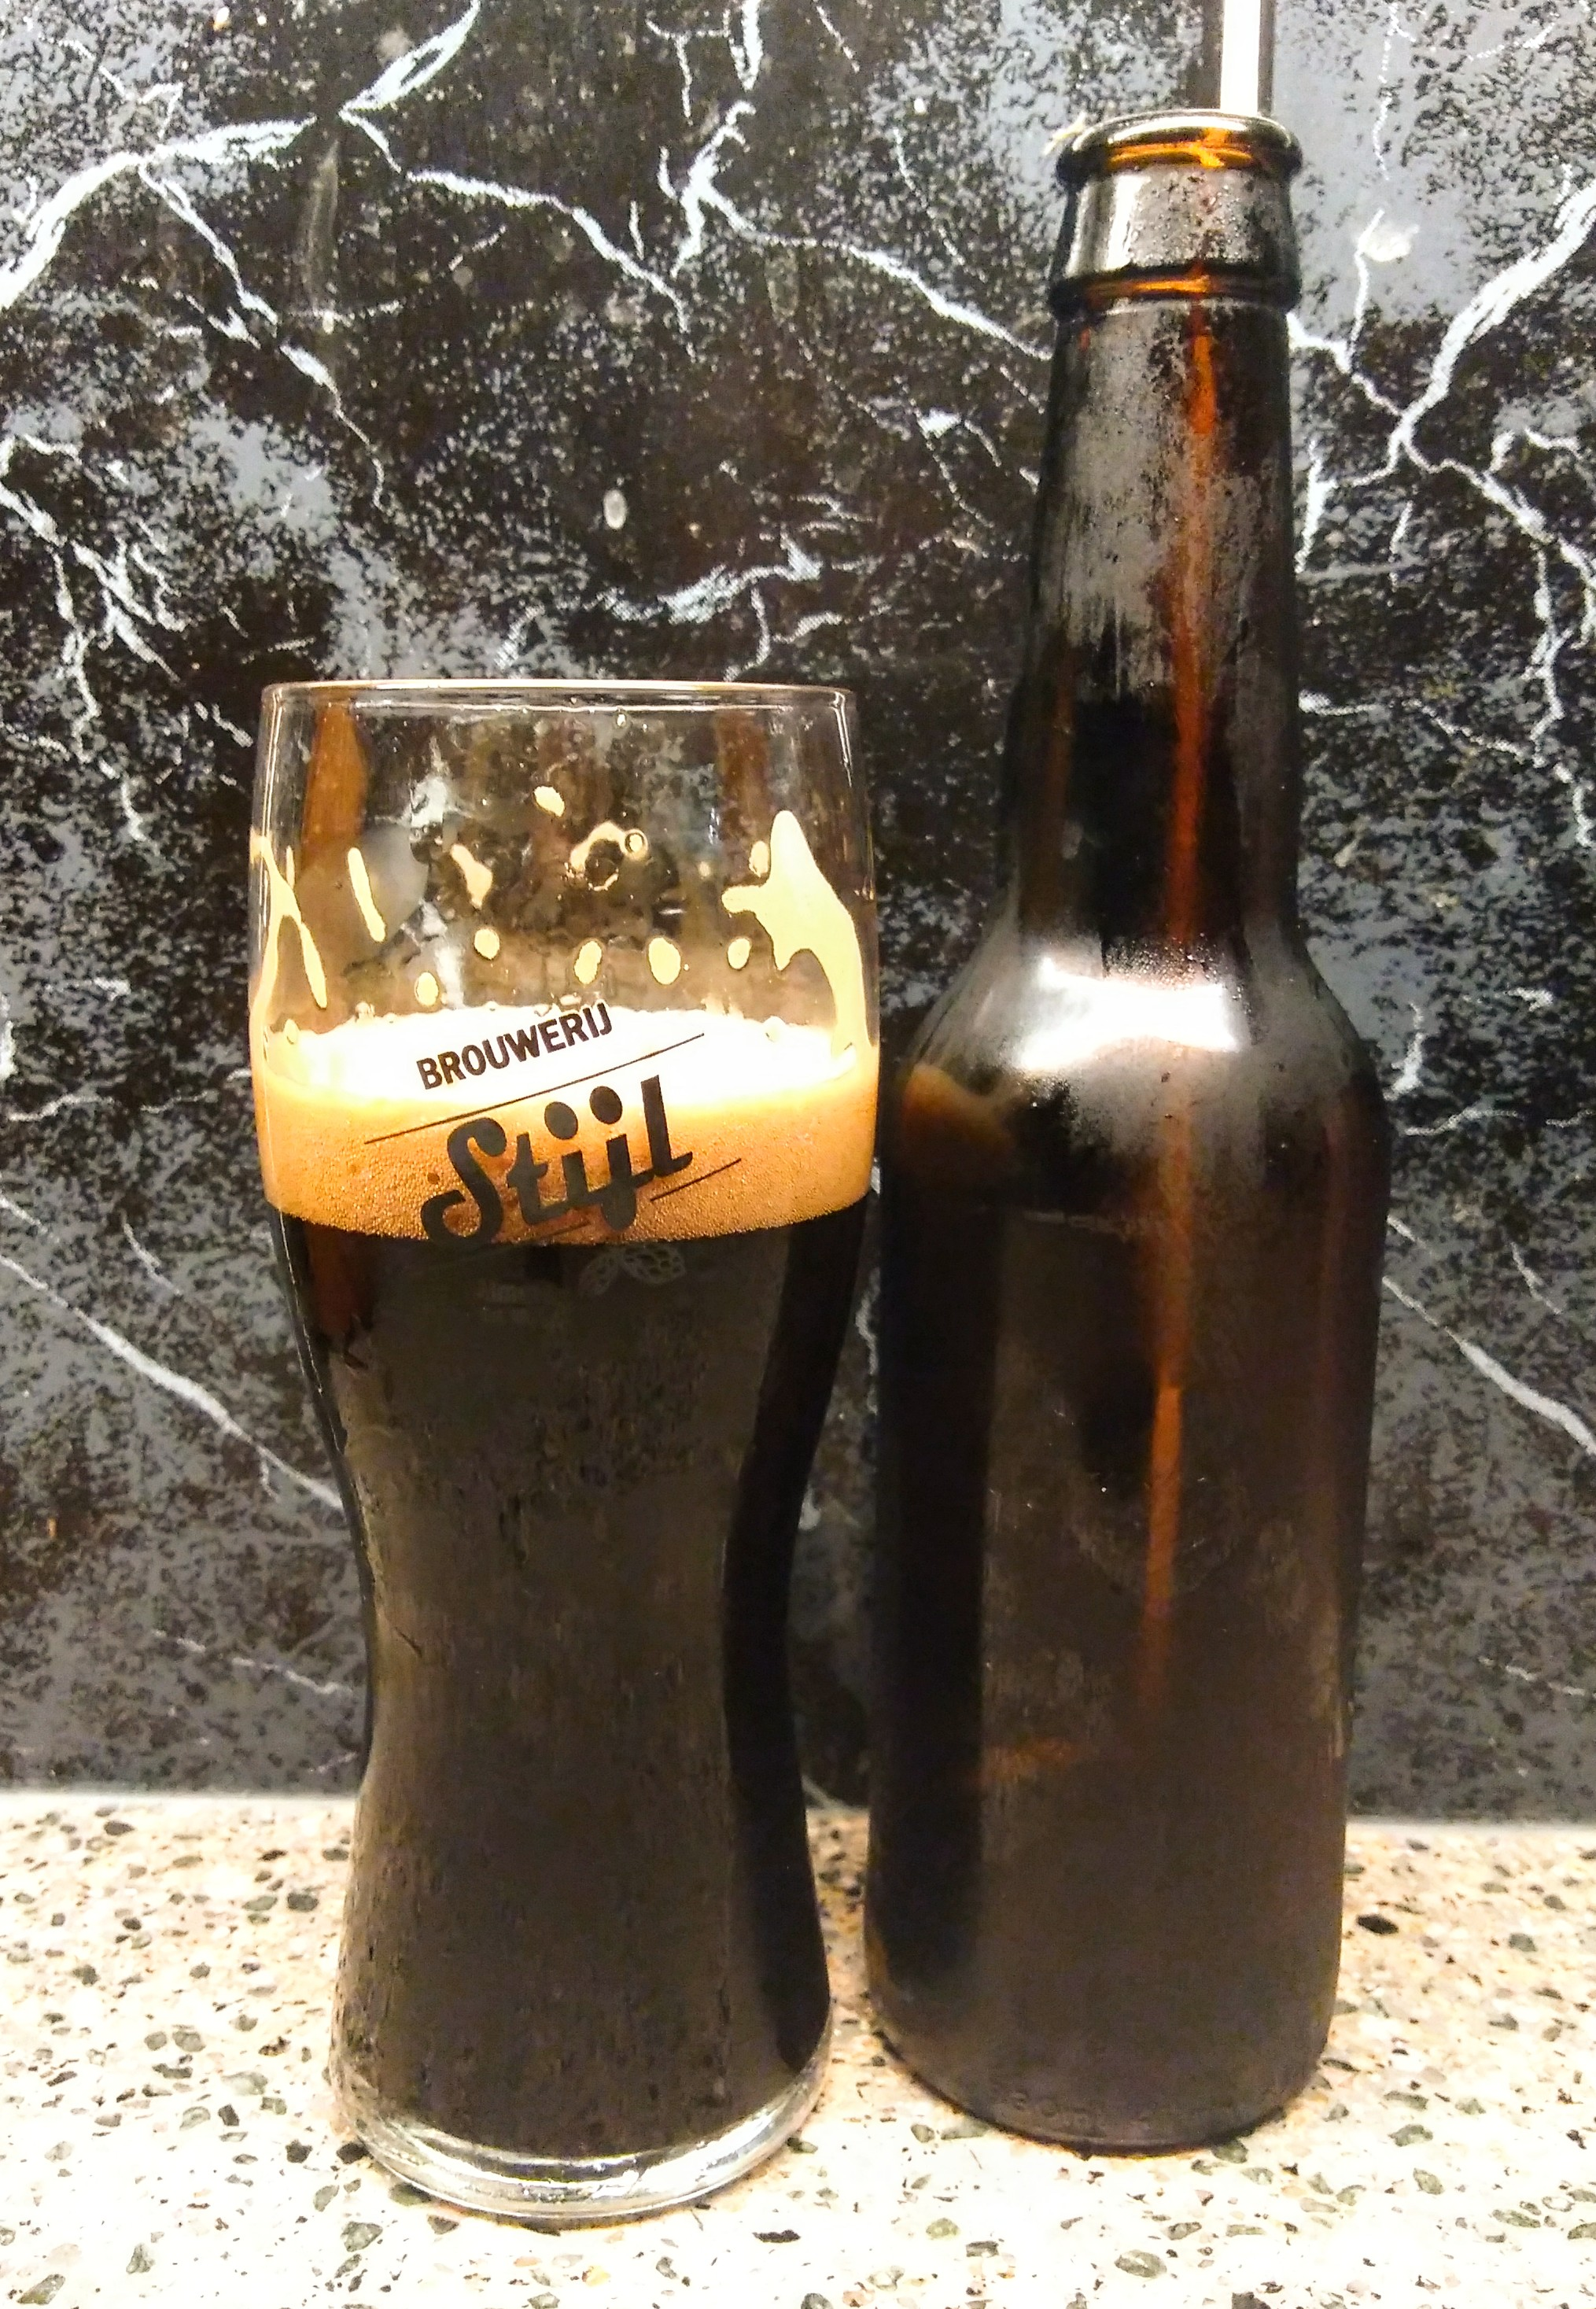 Bierlab 21 Imperial Orange Stout